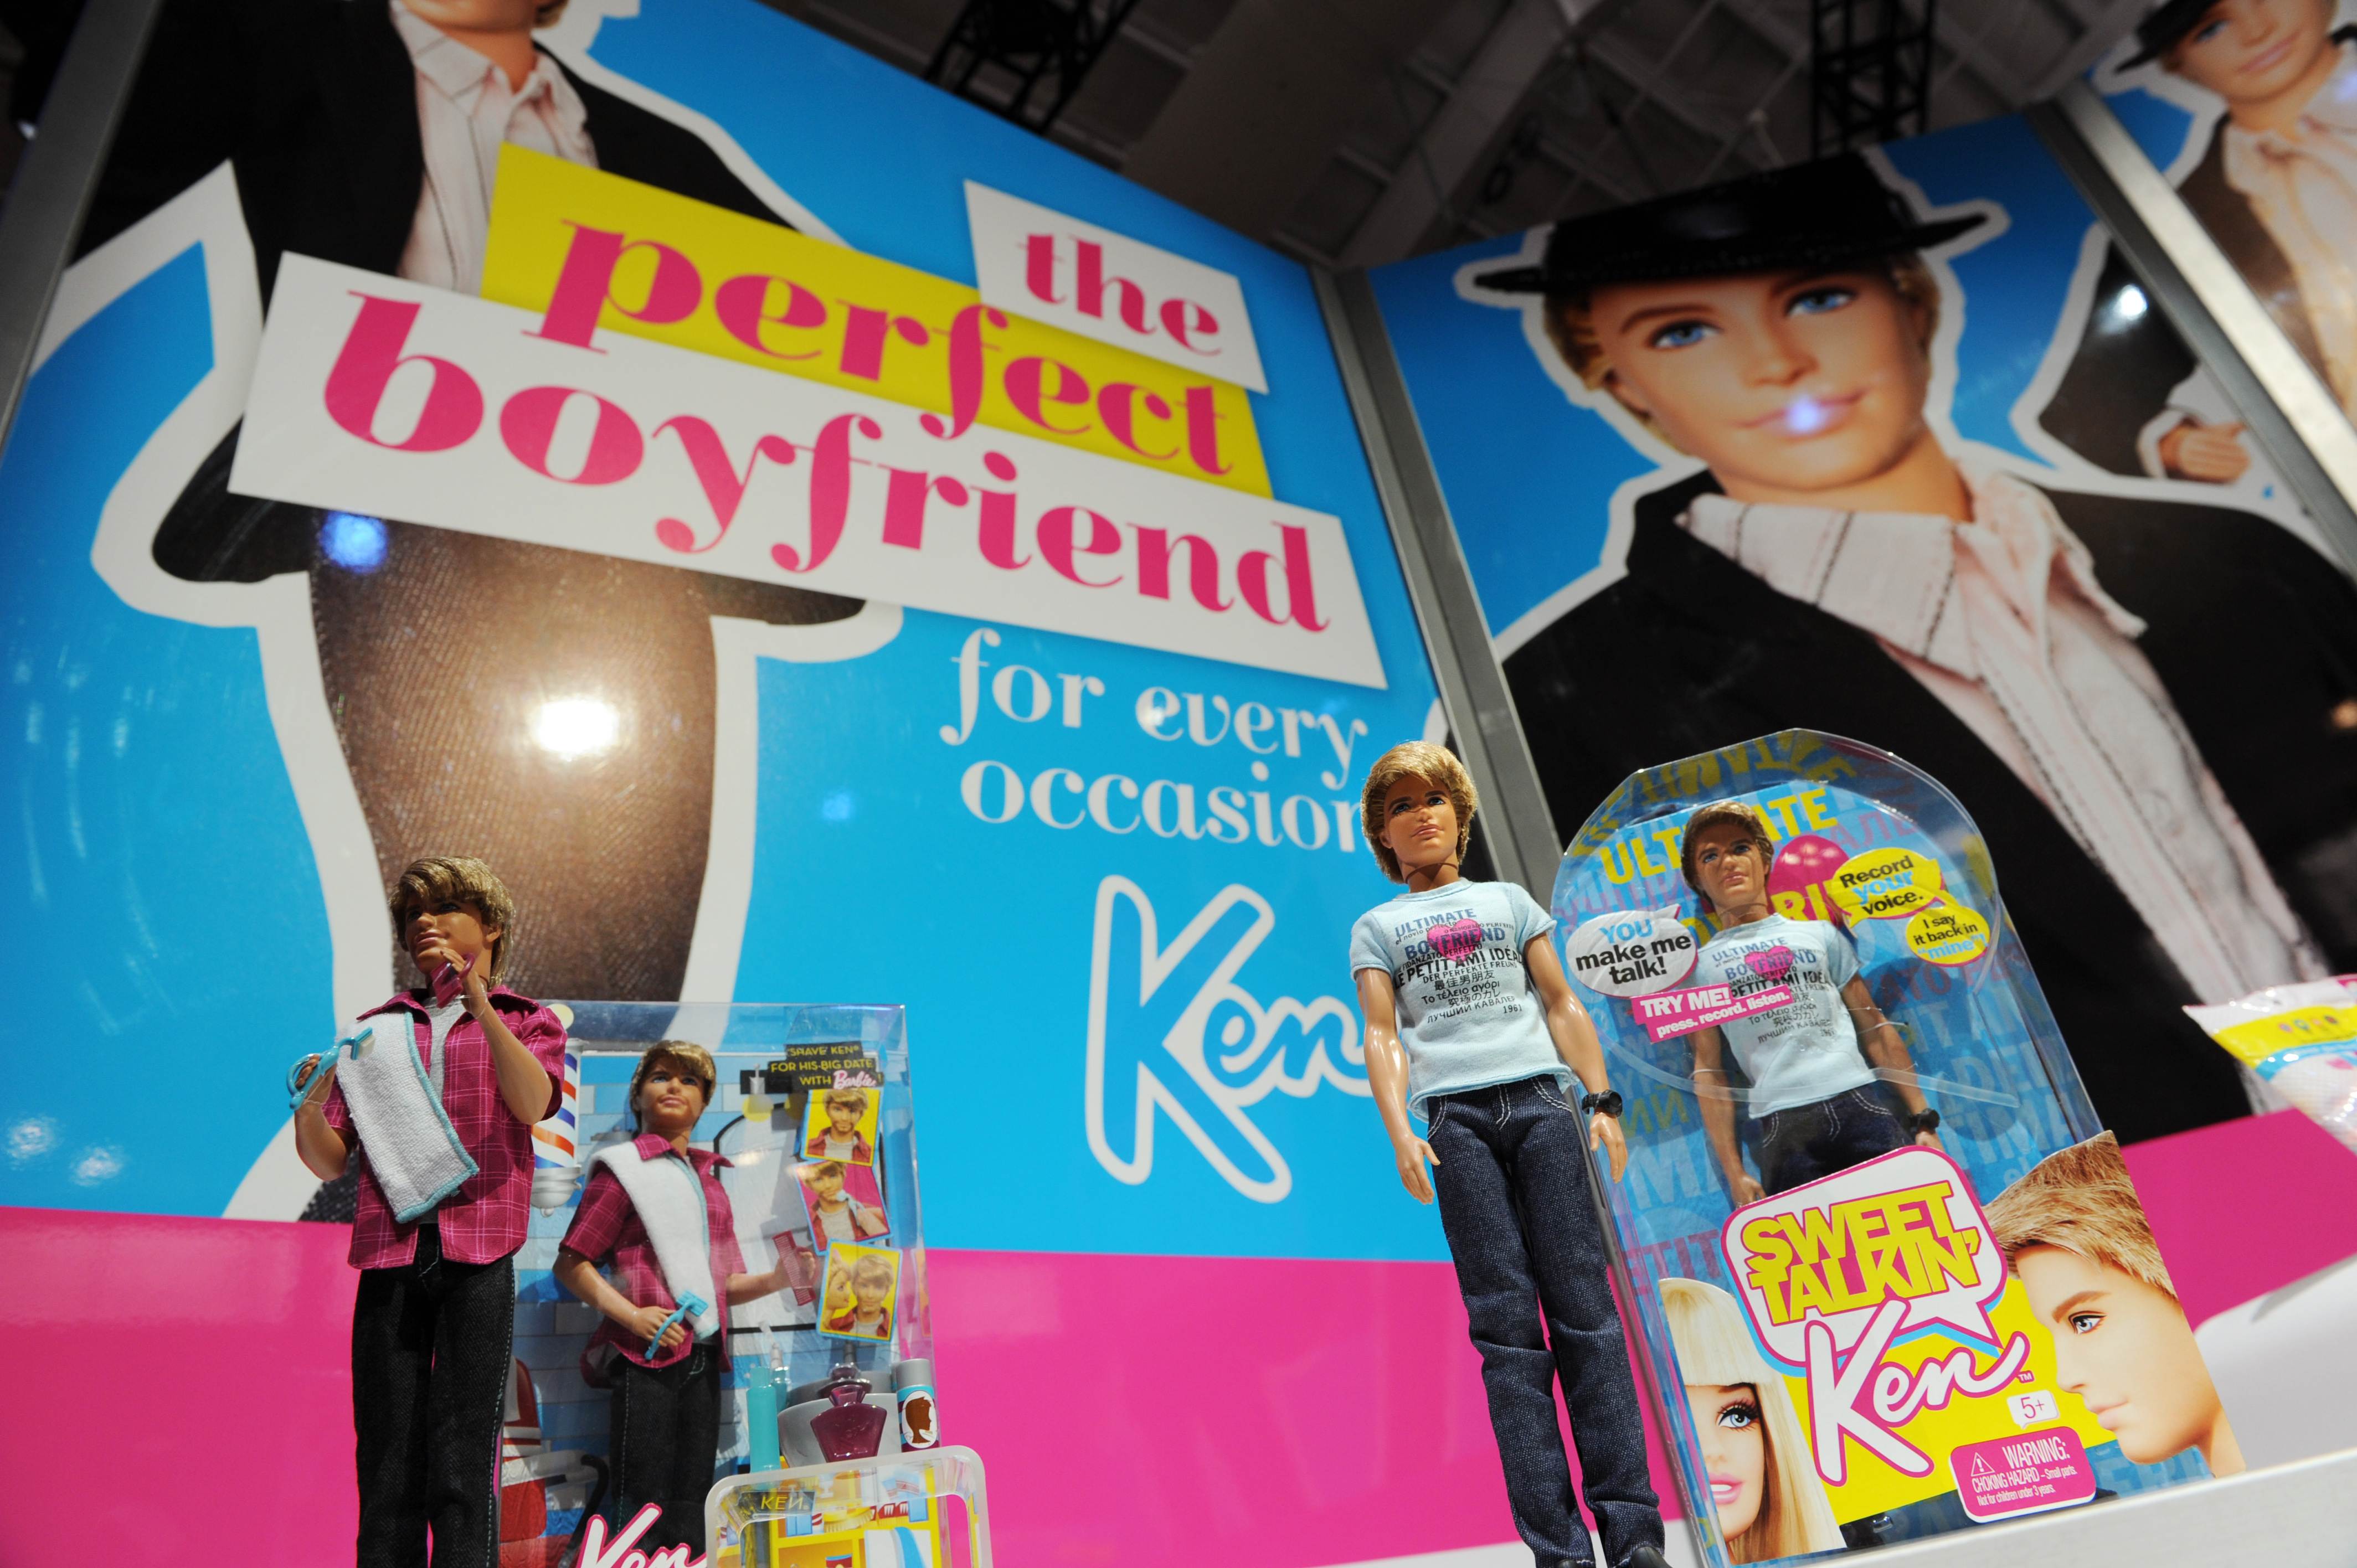 A display of Ken dolls from the Barbie l